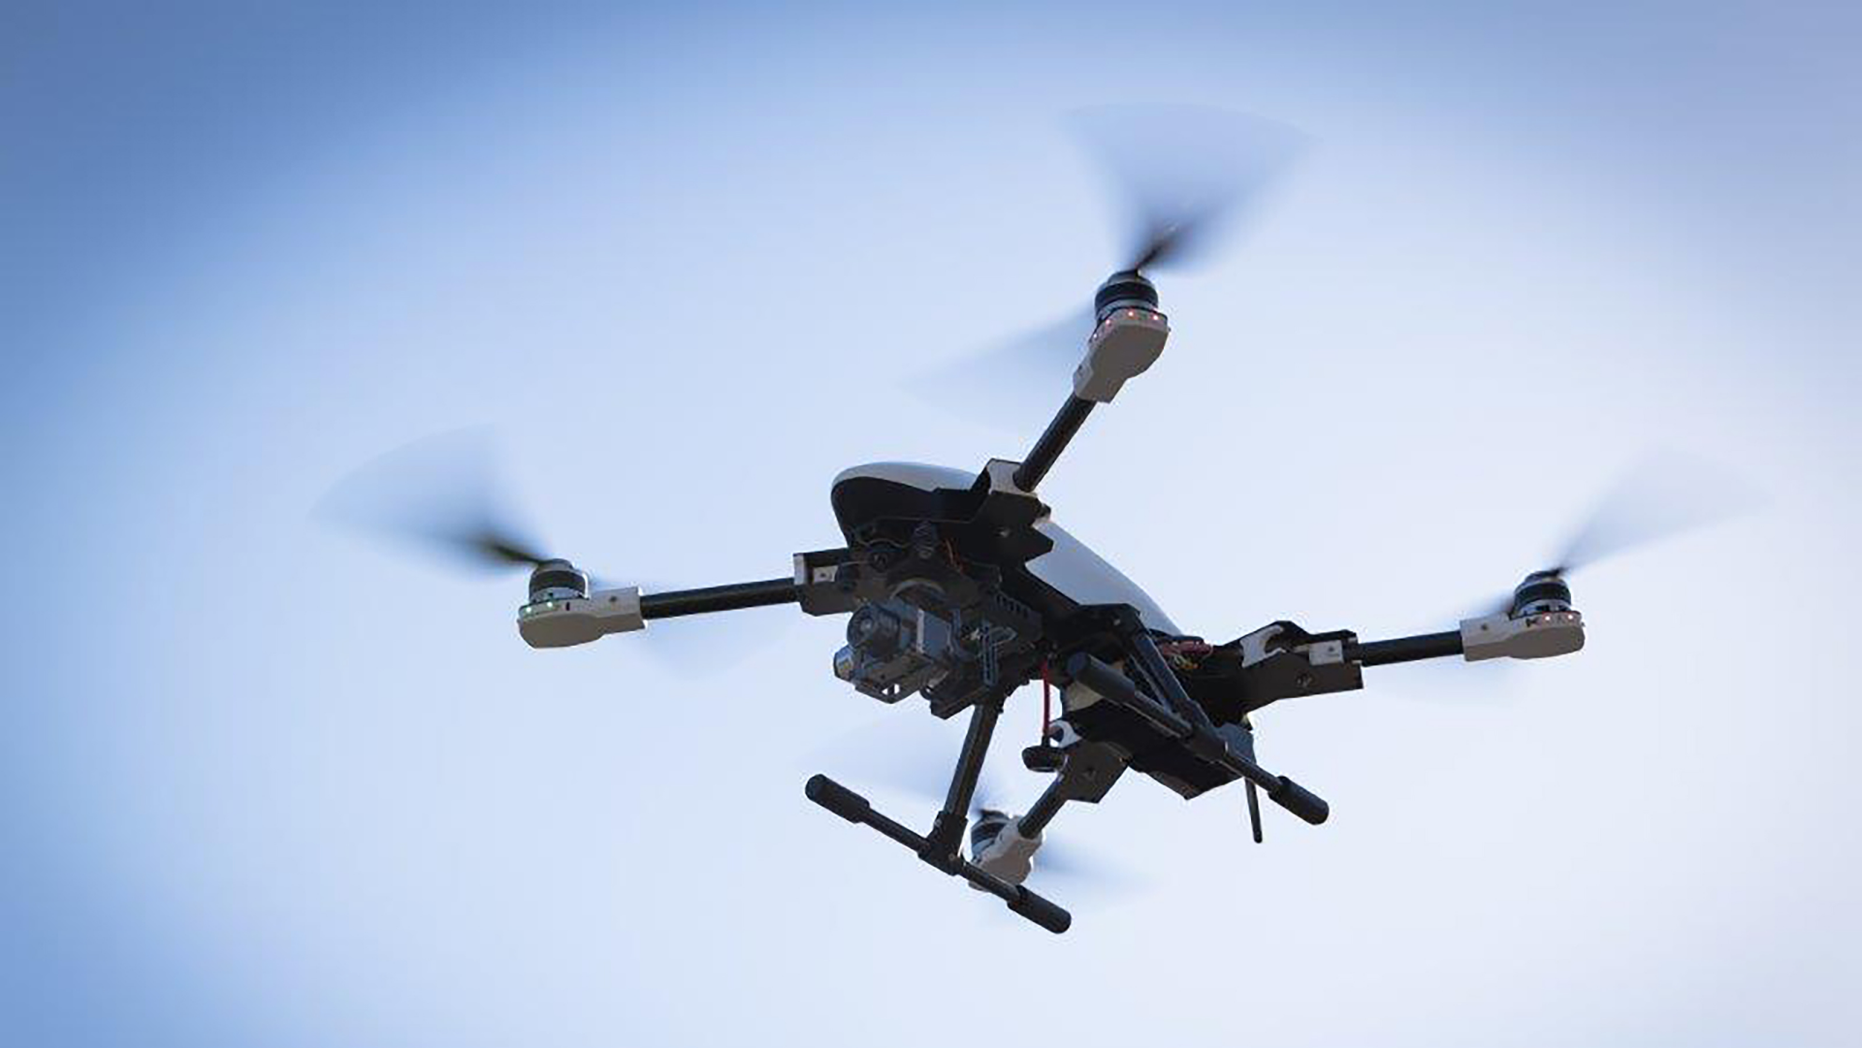 Arms manufacturers are rushing to develop missile systems to take down drones.